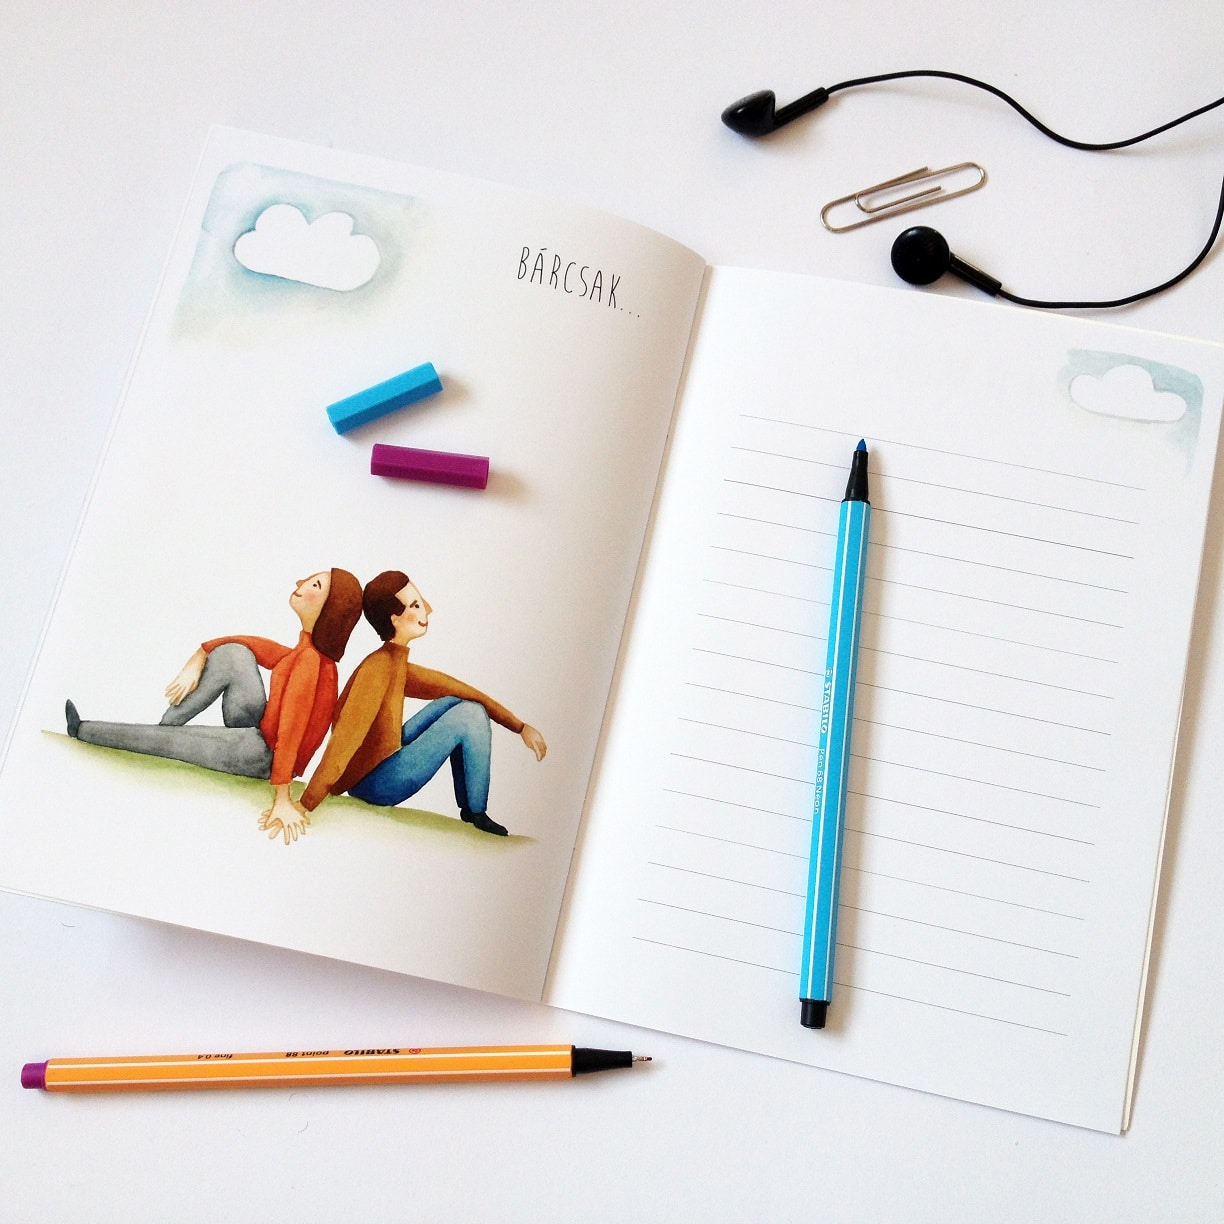 Love book - exercisebook about love